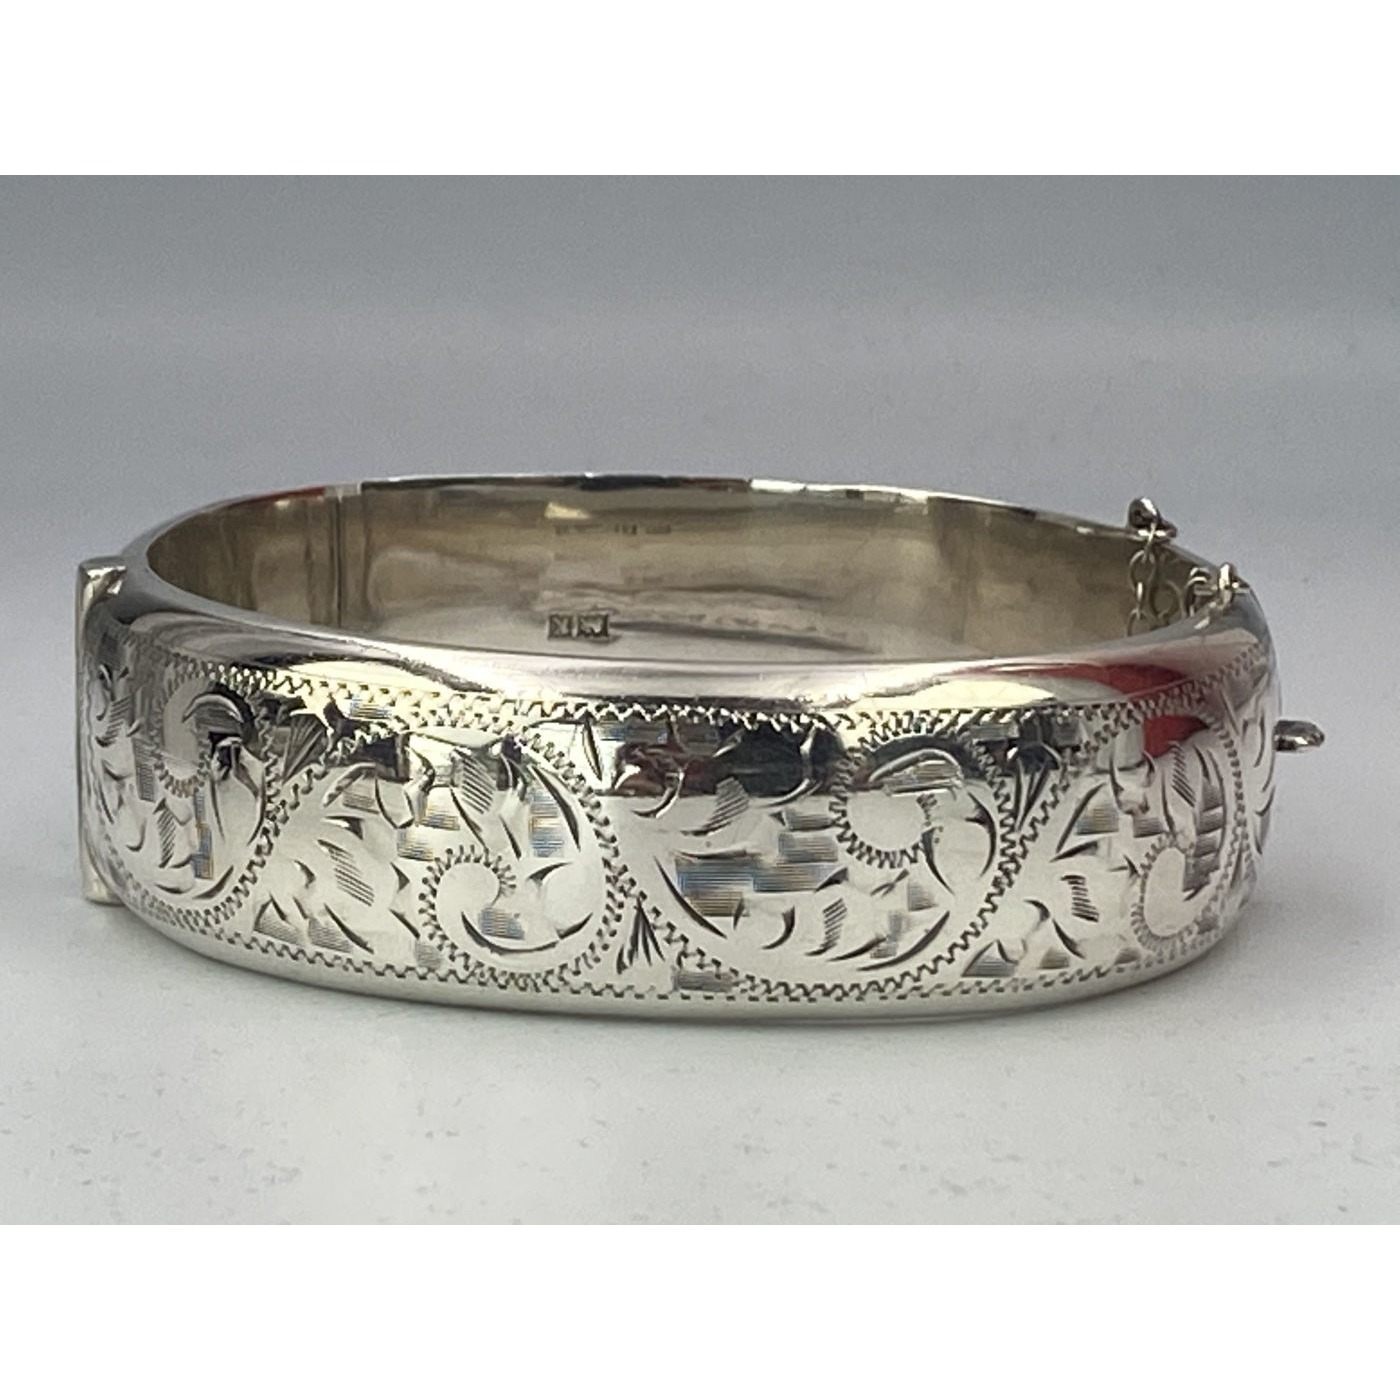 Exceptional Engraved Swirls Double-Walled English Silver Bangle